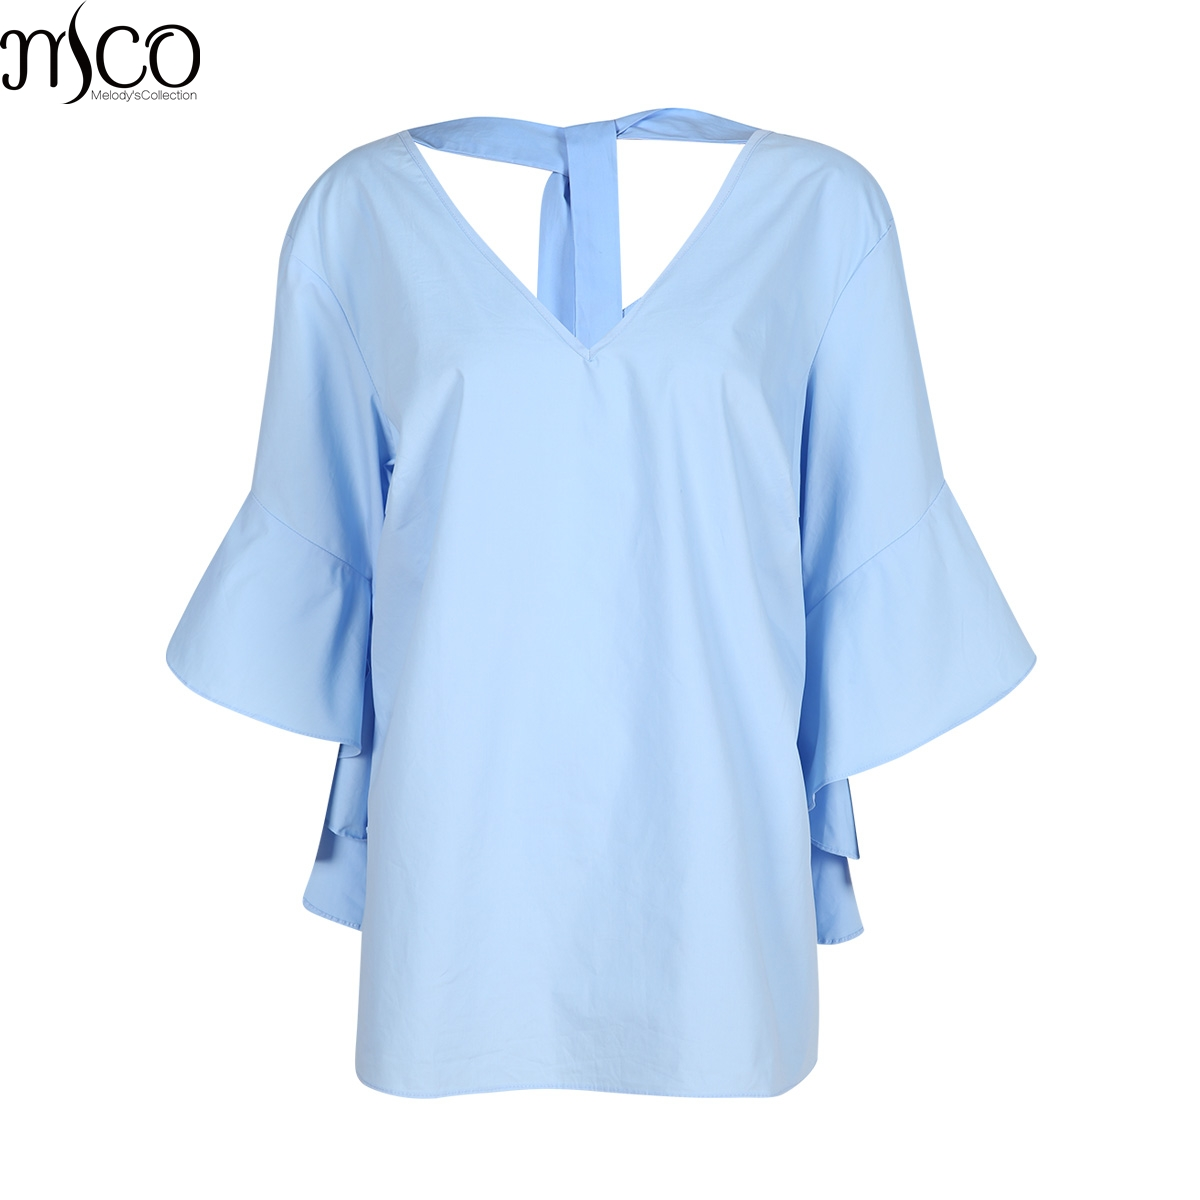 MCO Autumn Vintage Butterfly Sleeves Plus Size Blouse For Women Sexy Lace Up V Neck Big Size Top Oversized Simple Shirt 6xl 7xl